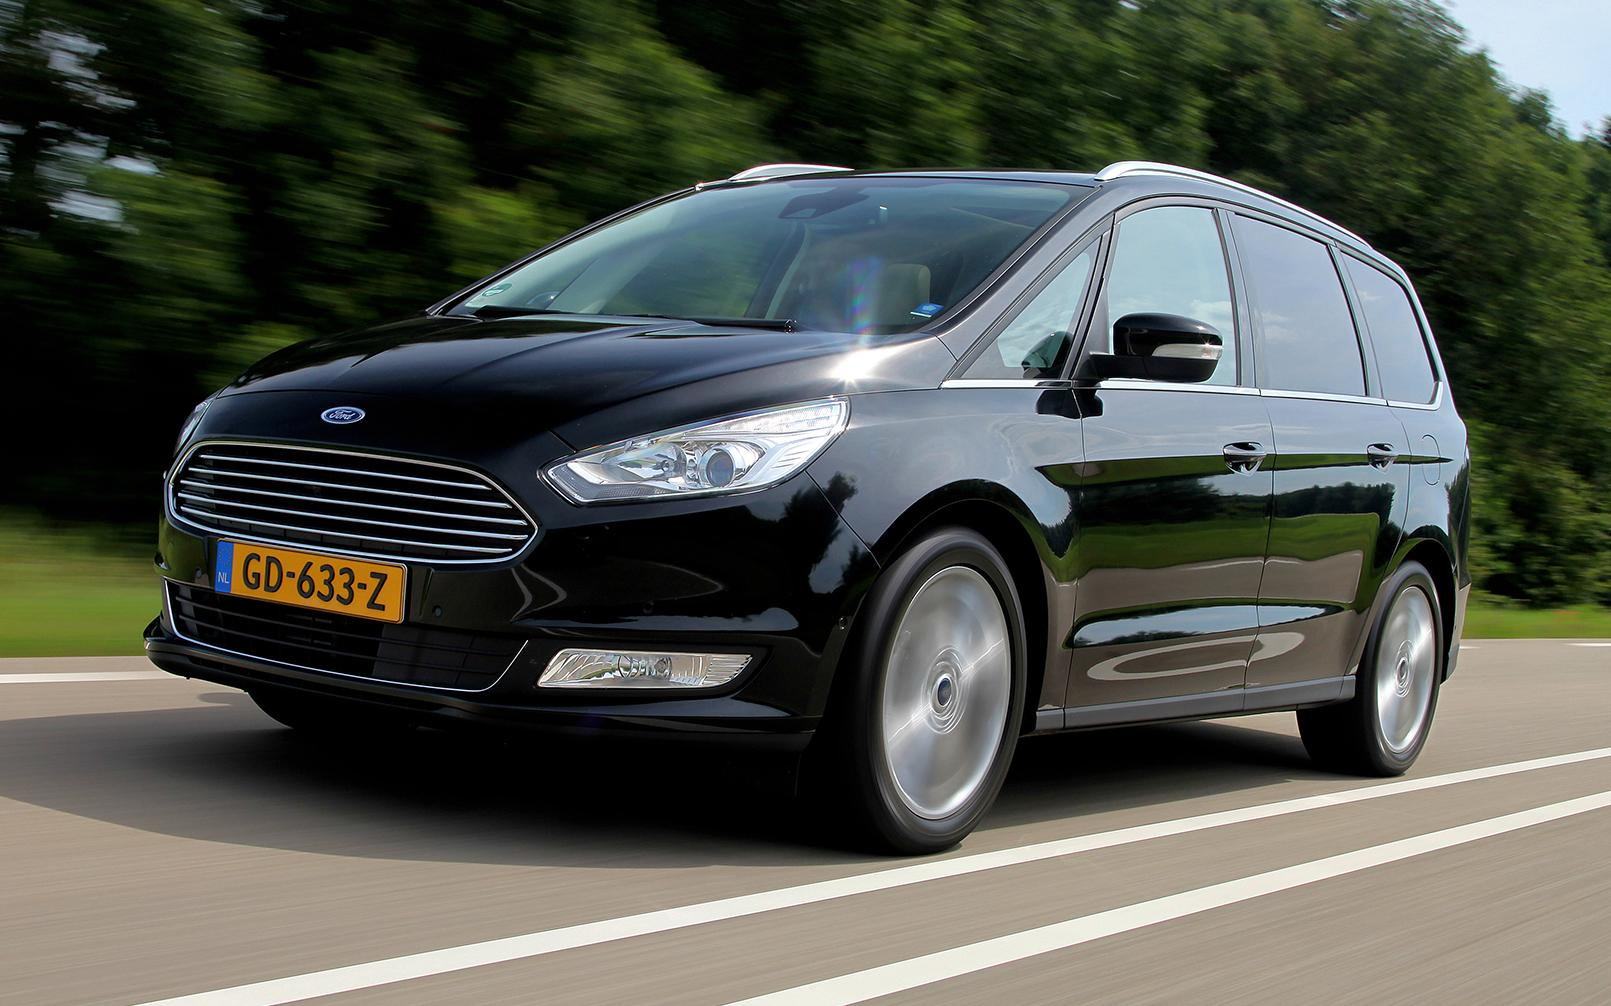 ford galaxy 2 0 tdci 180 pk awd 2016 test en specificaties topgear. Black Bedroom Furniture Sets. Home Design Ideas